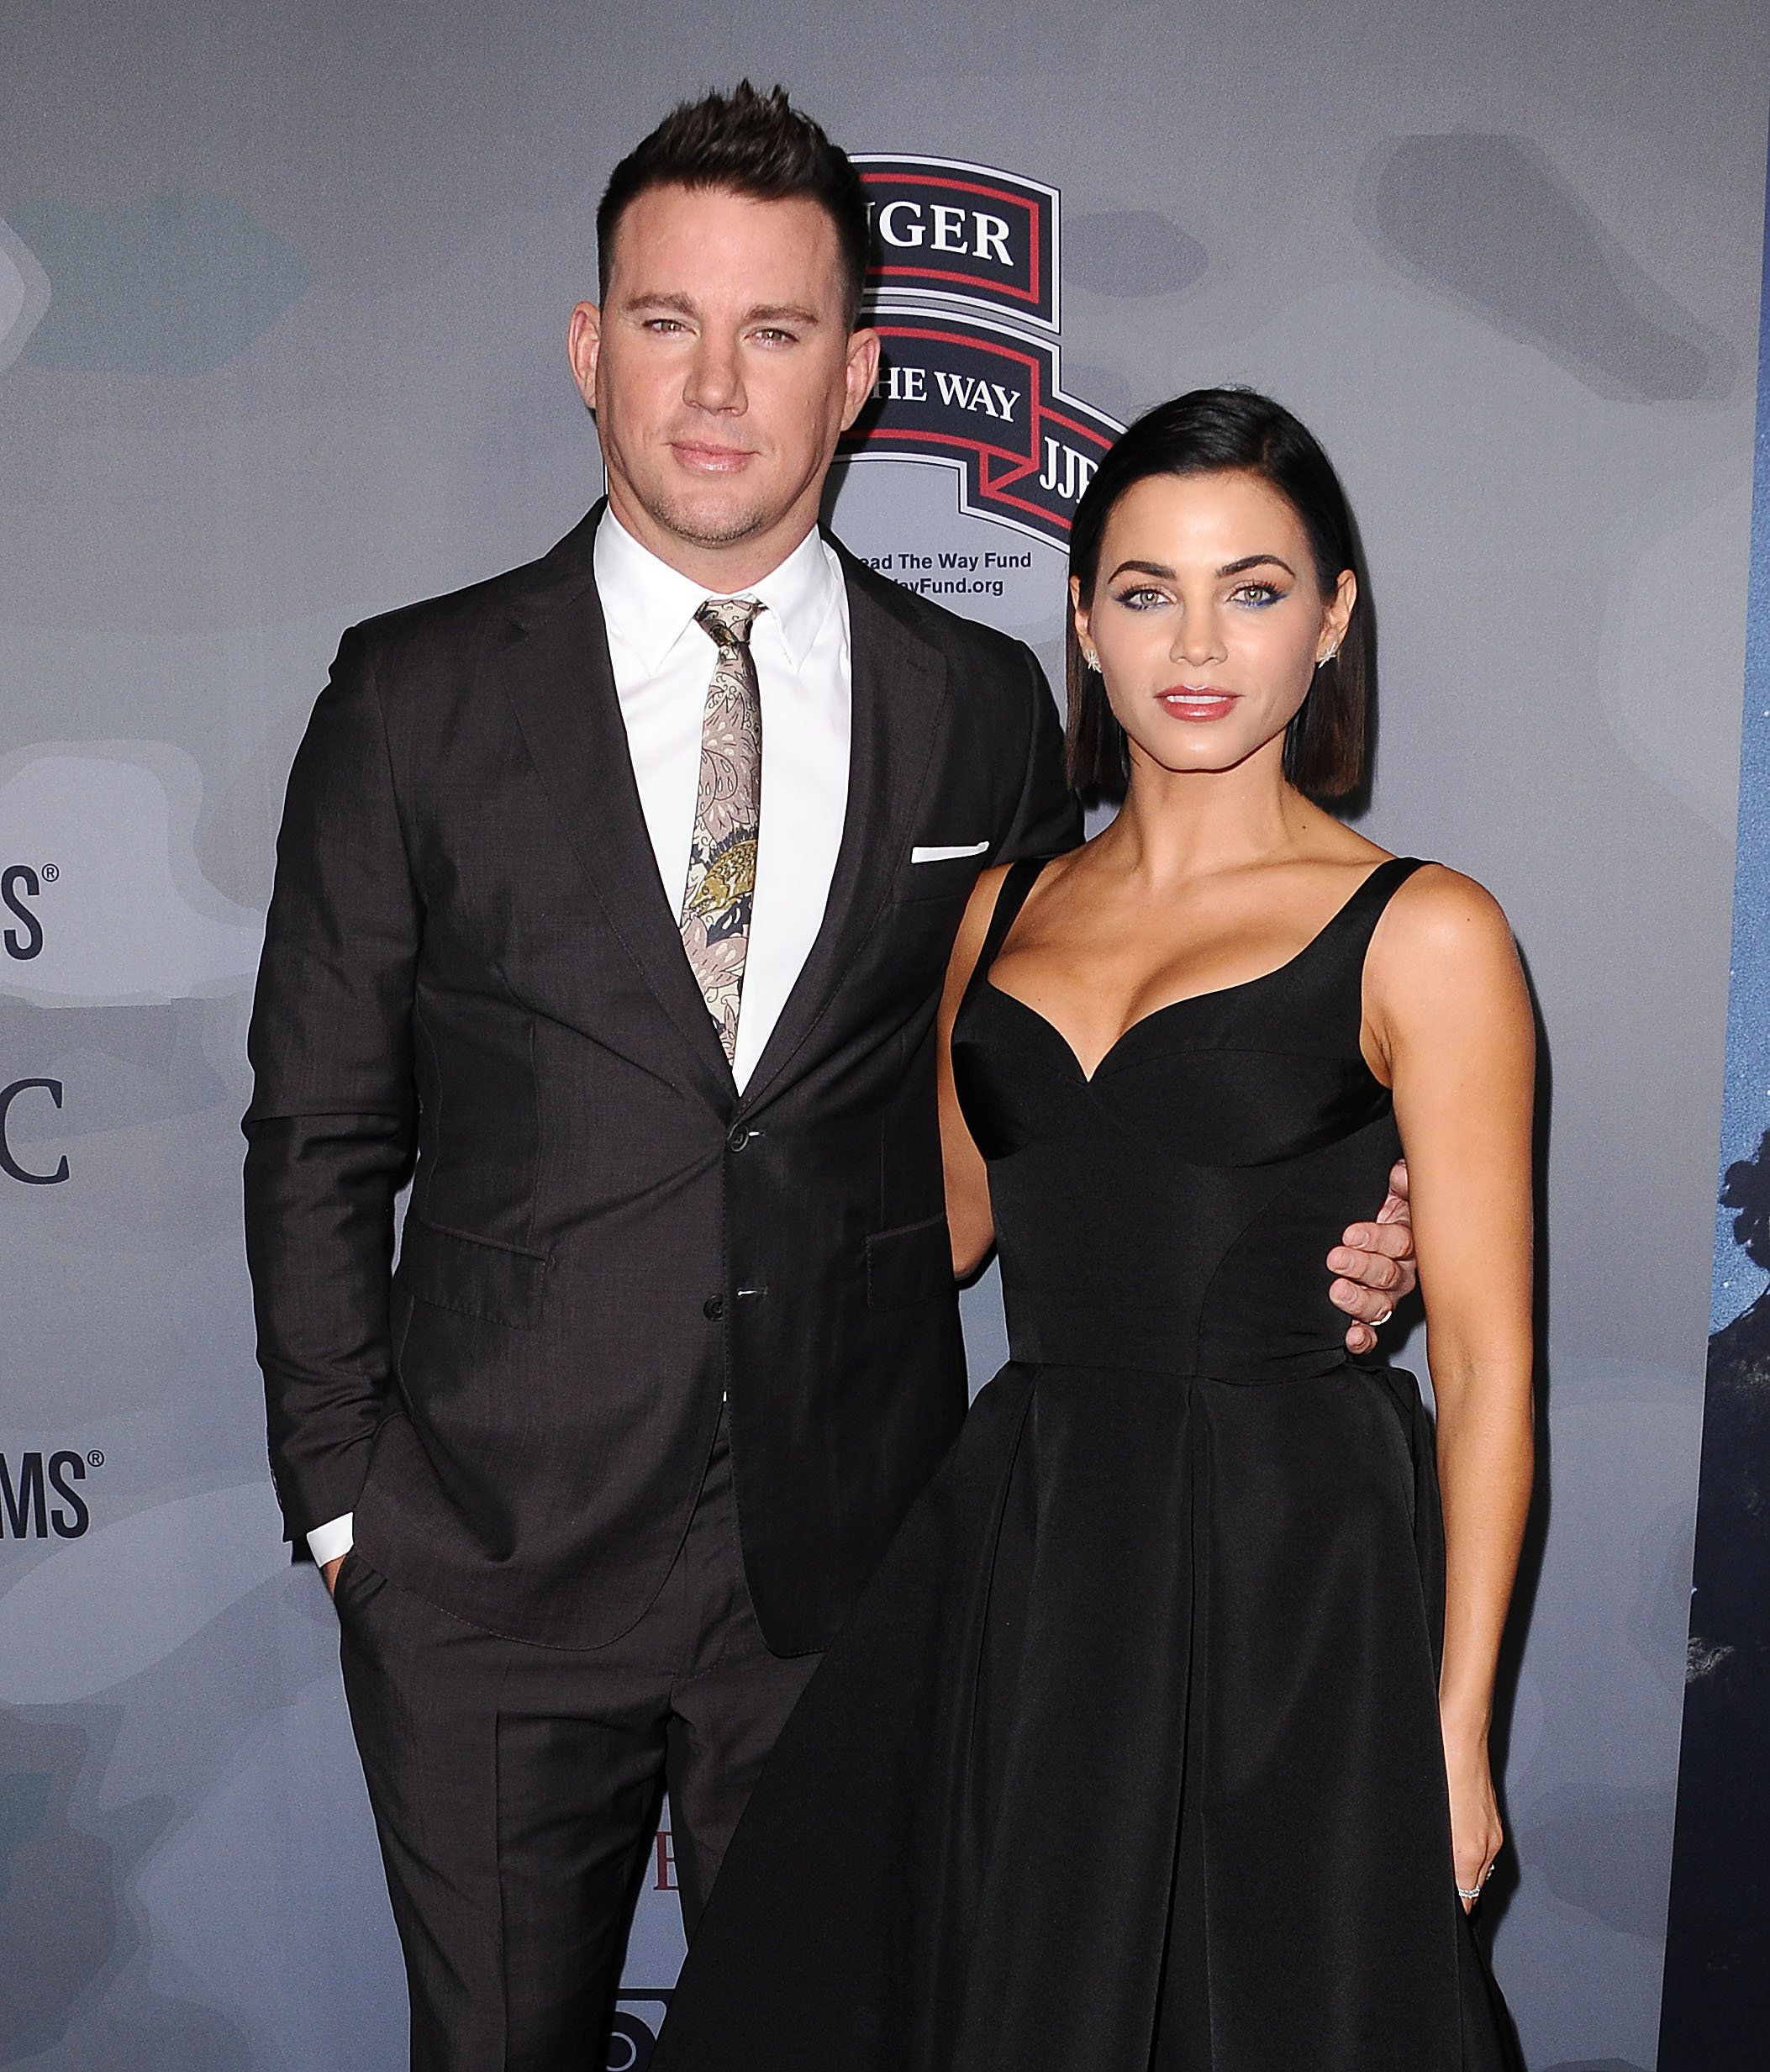 LOS ANGELES, CA - NOVEMBER 06:  Channing Tatum and Jenna Dewan Tatum attend the premiere of 'War Dog: A Soldier's Best Friend' at Directors Guild Of America on November 6, 2017 in Los Angeles, California.  (Photo by Jason LaVeris/FilmMagic)